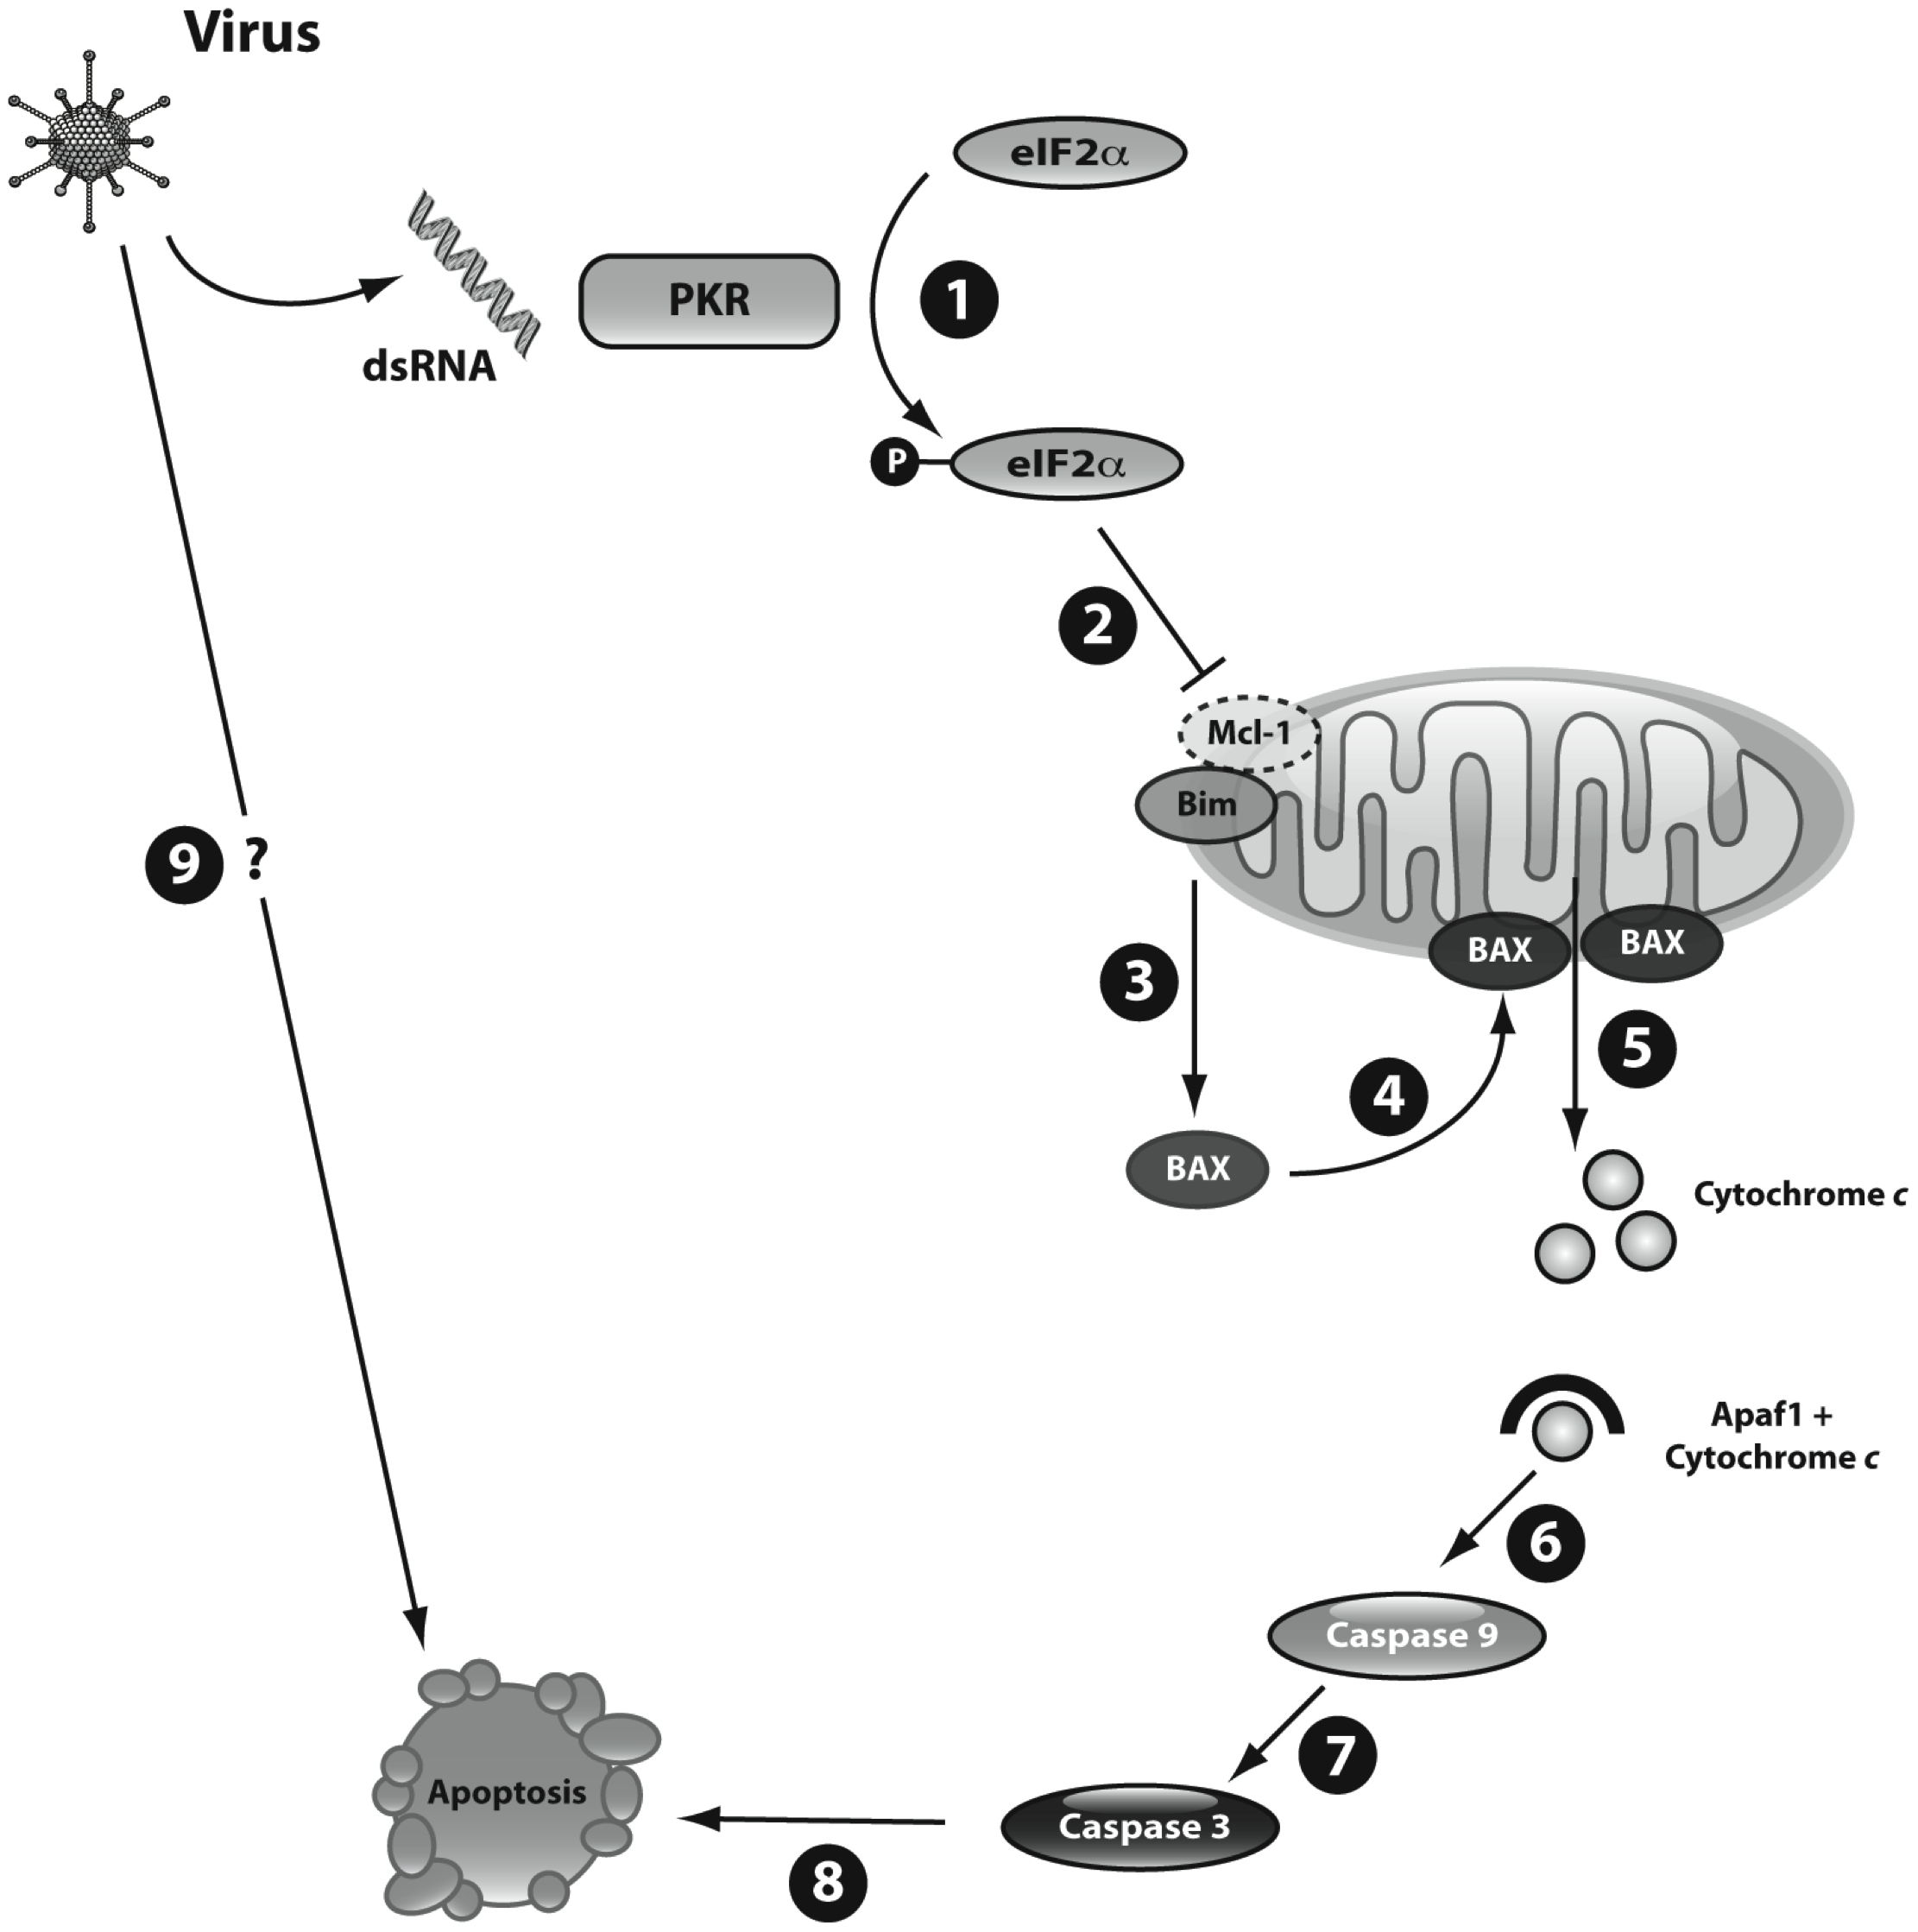 Schematic representation of dsRNA- and virus-induced beta cell apoptosis.